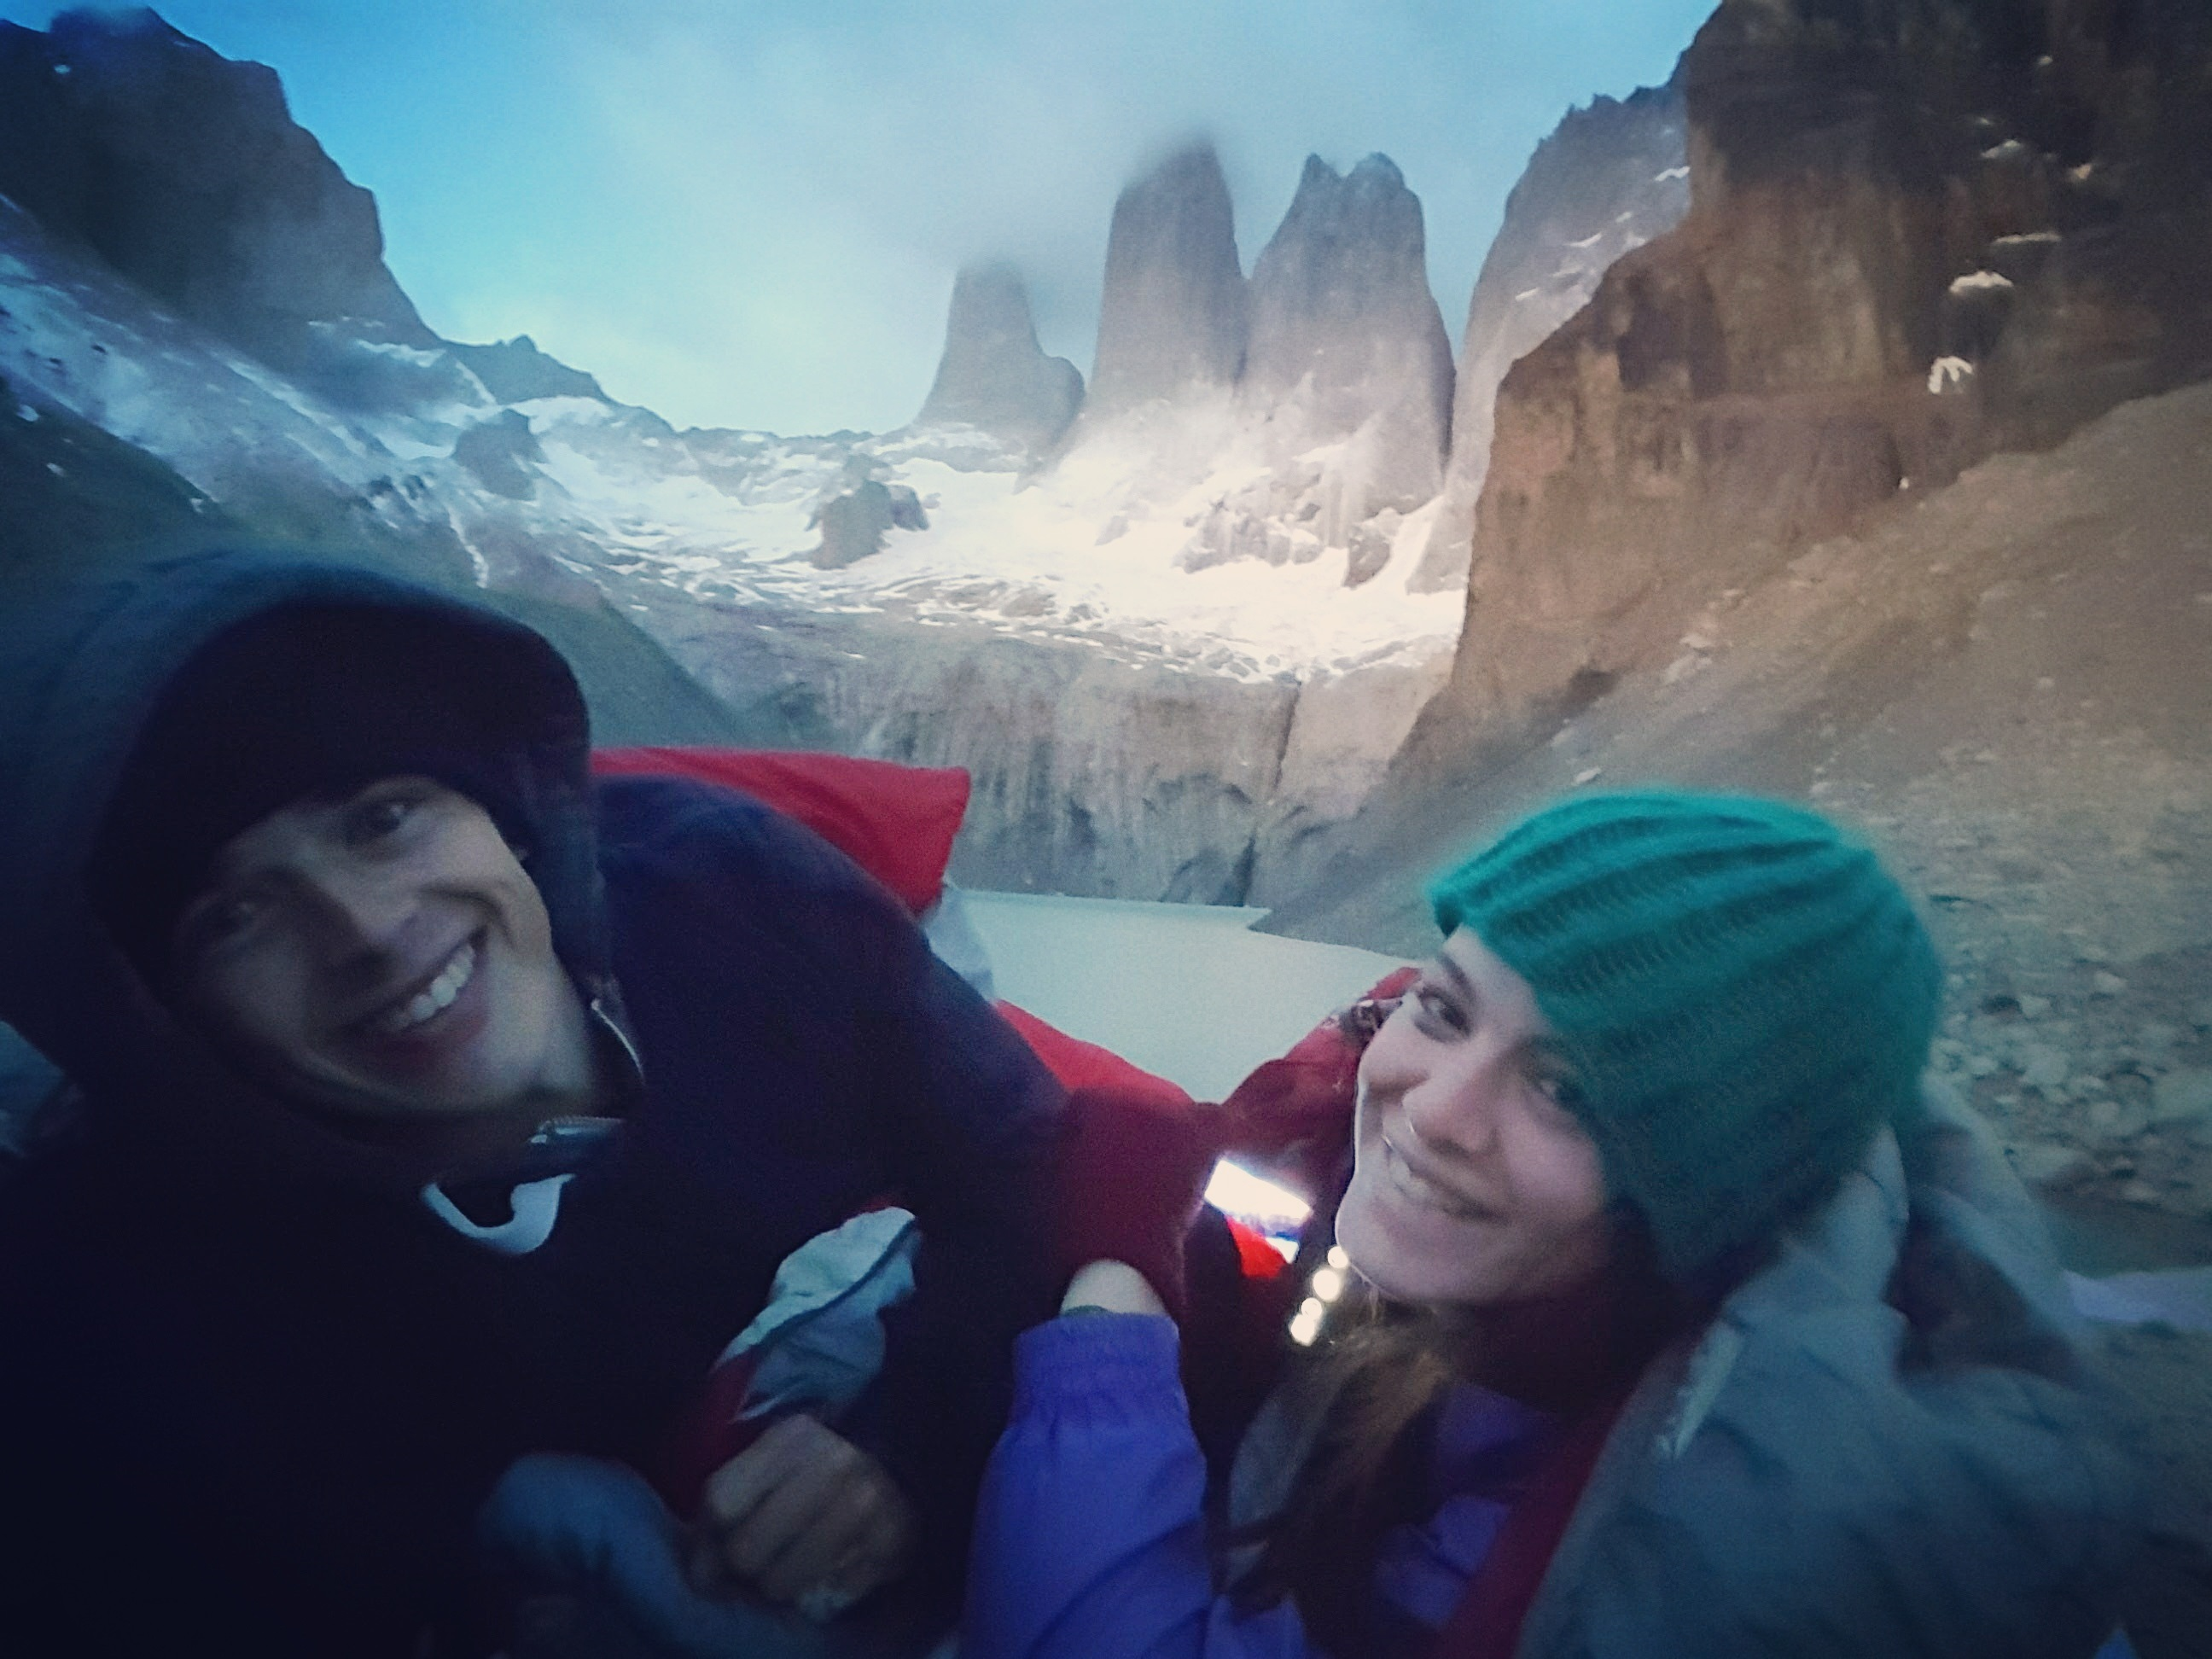 torres del paine altitude summit